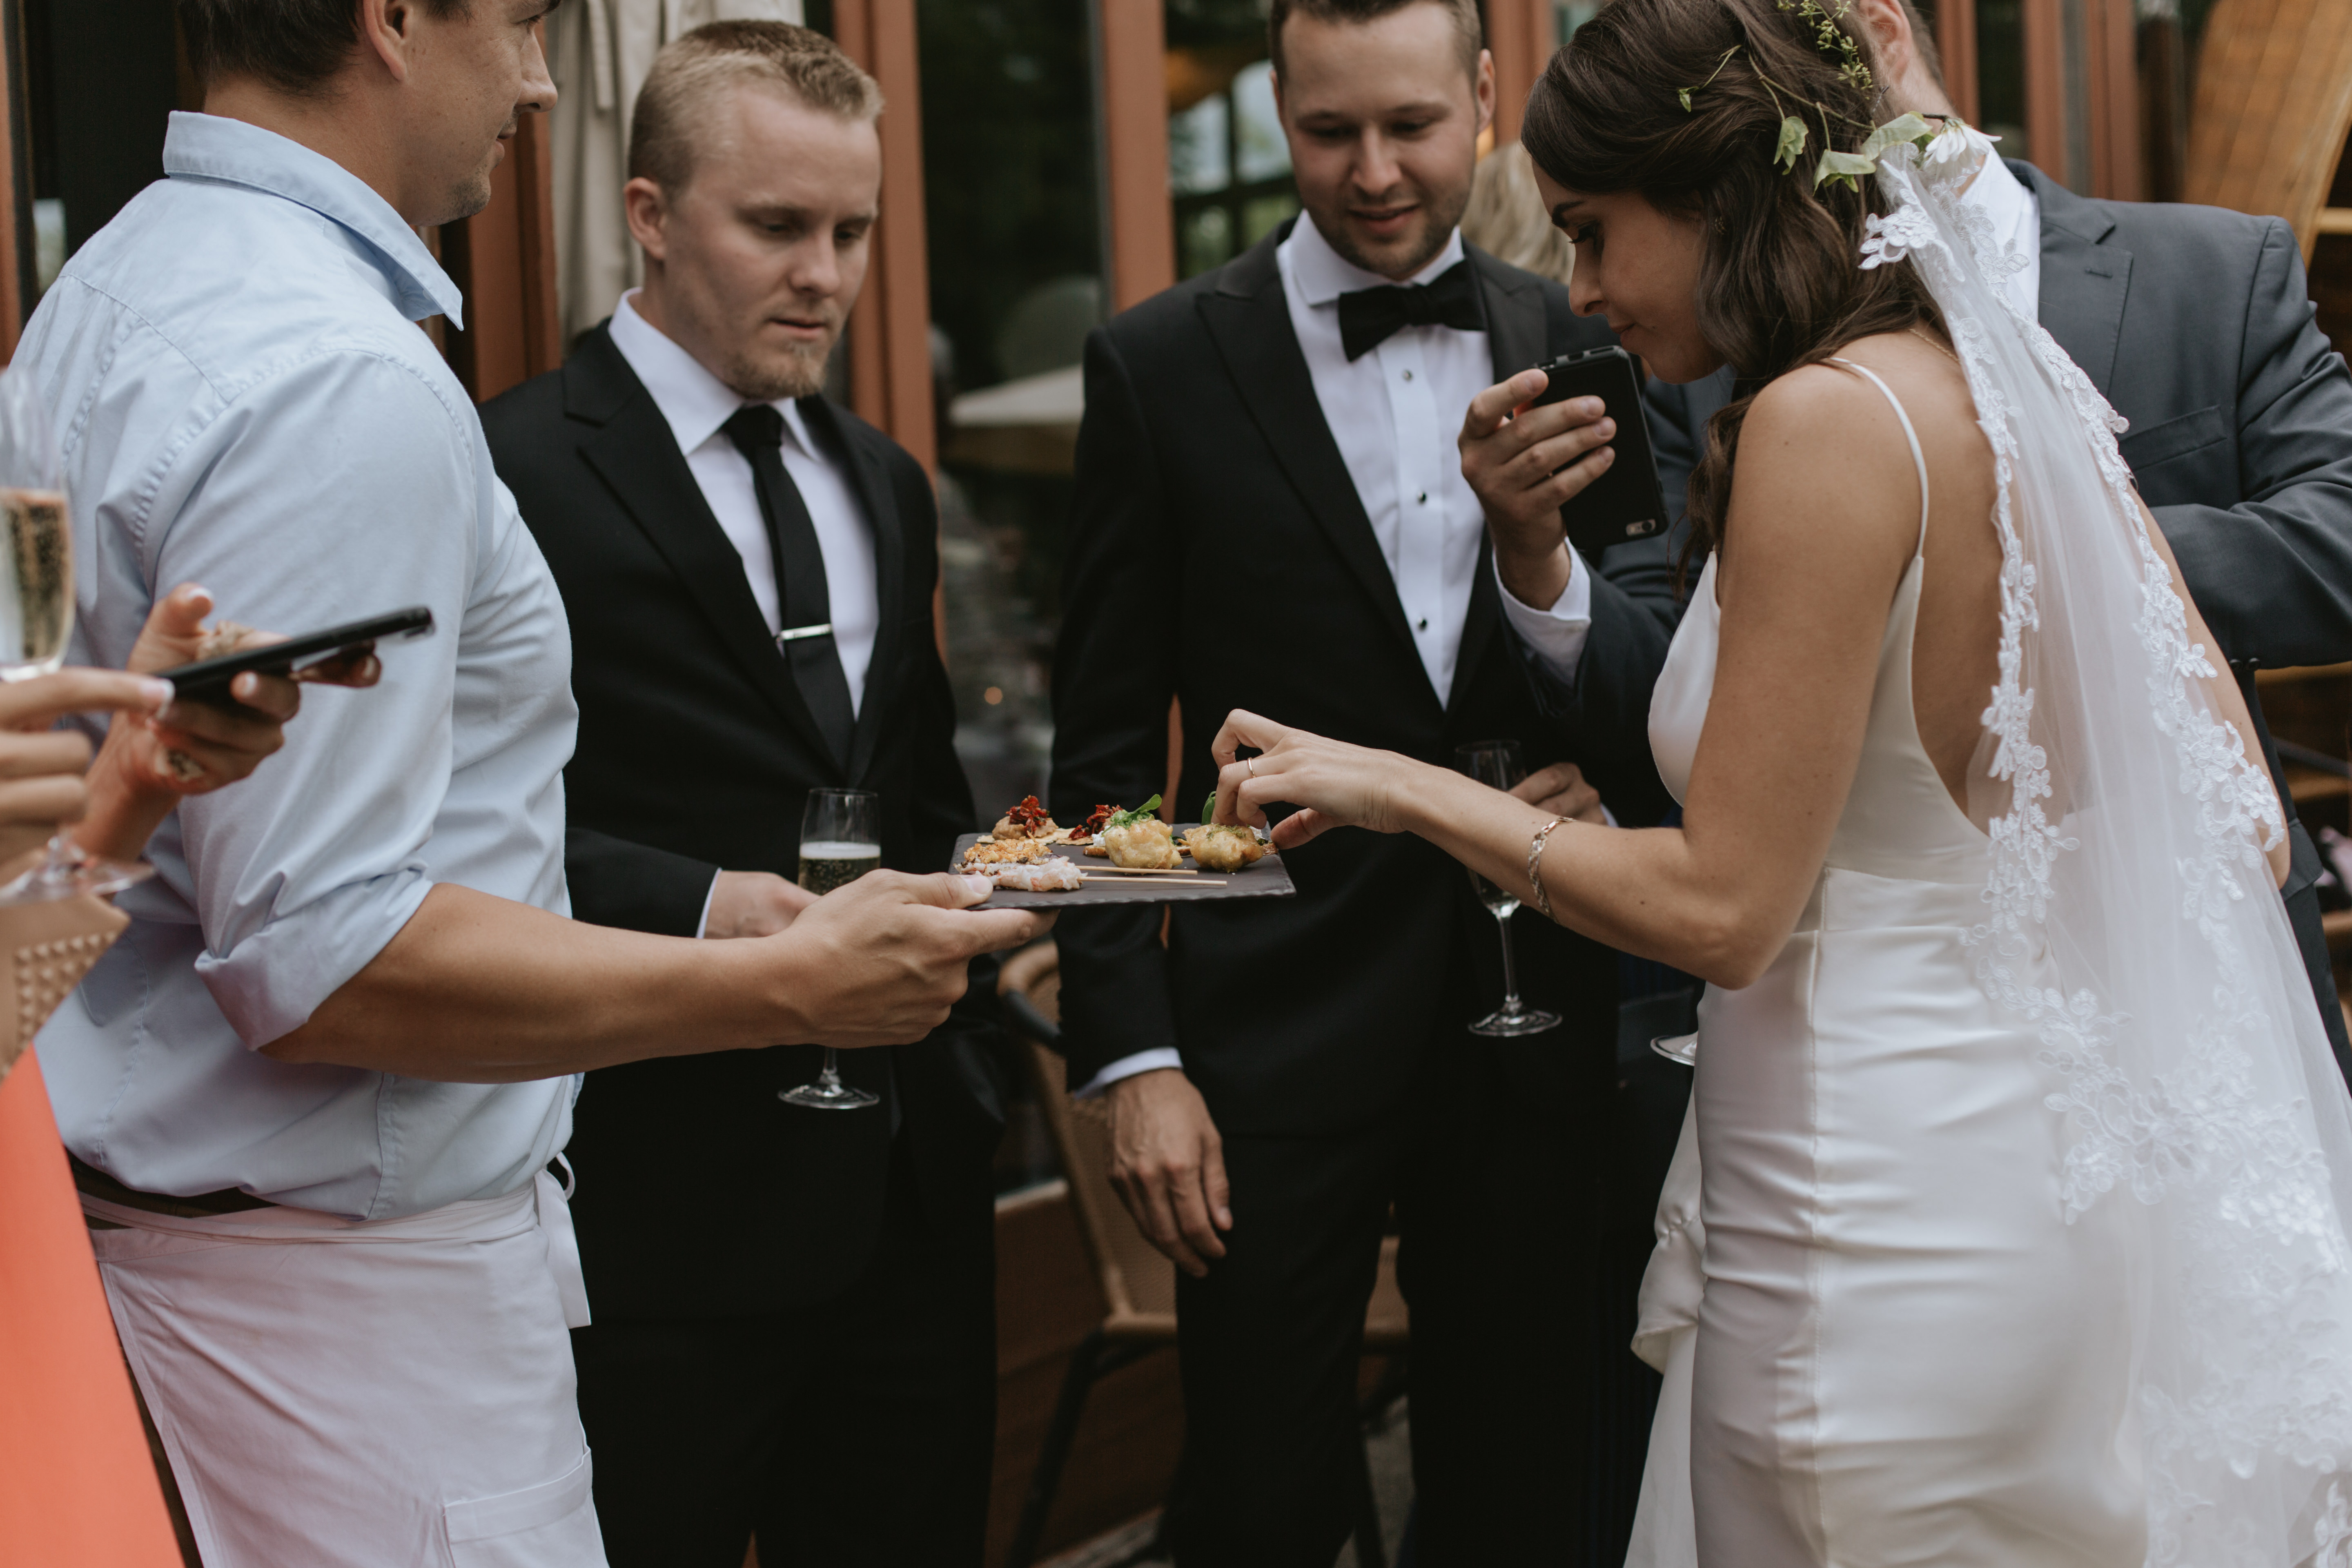 the wedding party eat hors d'oeuvres on the patio